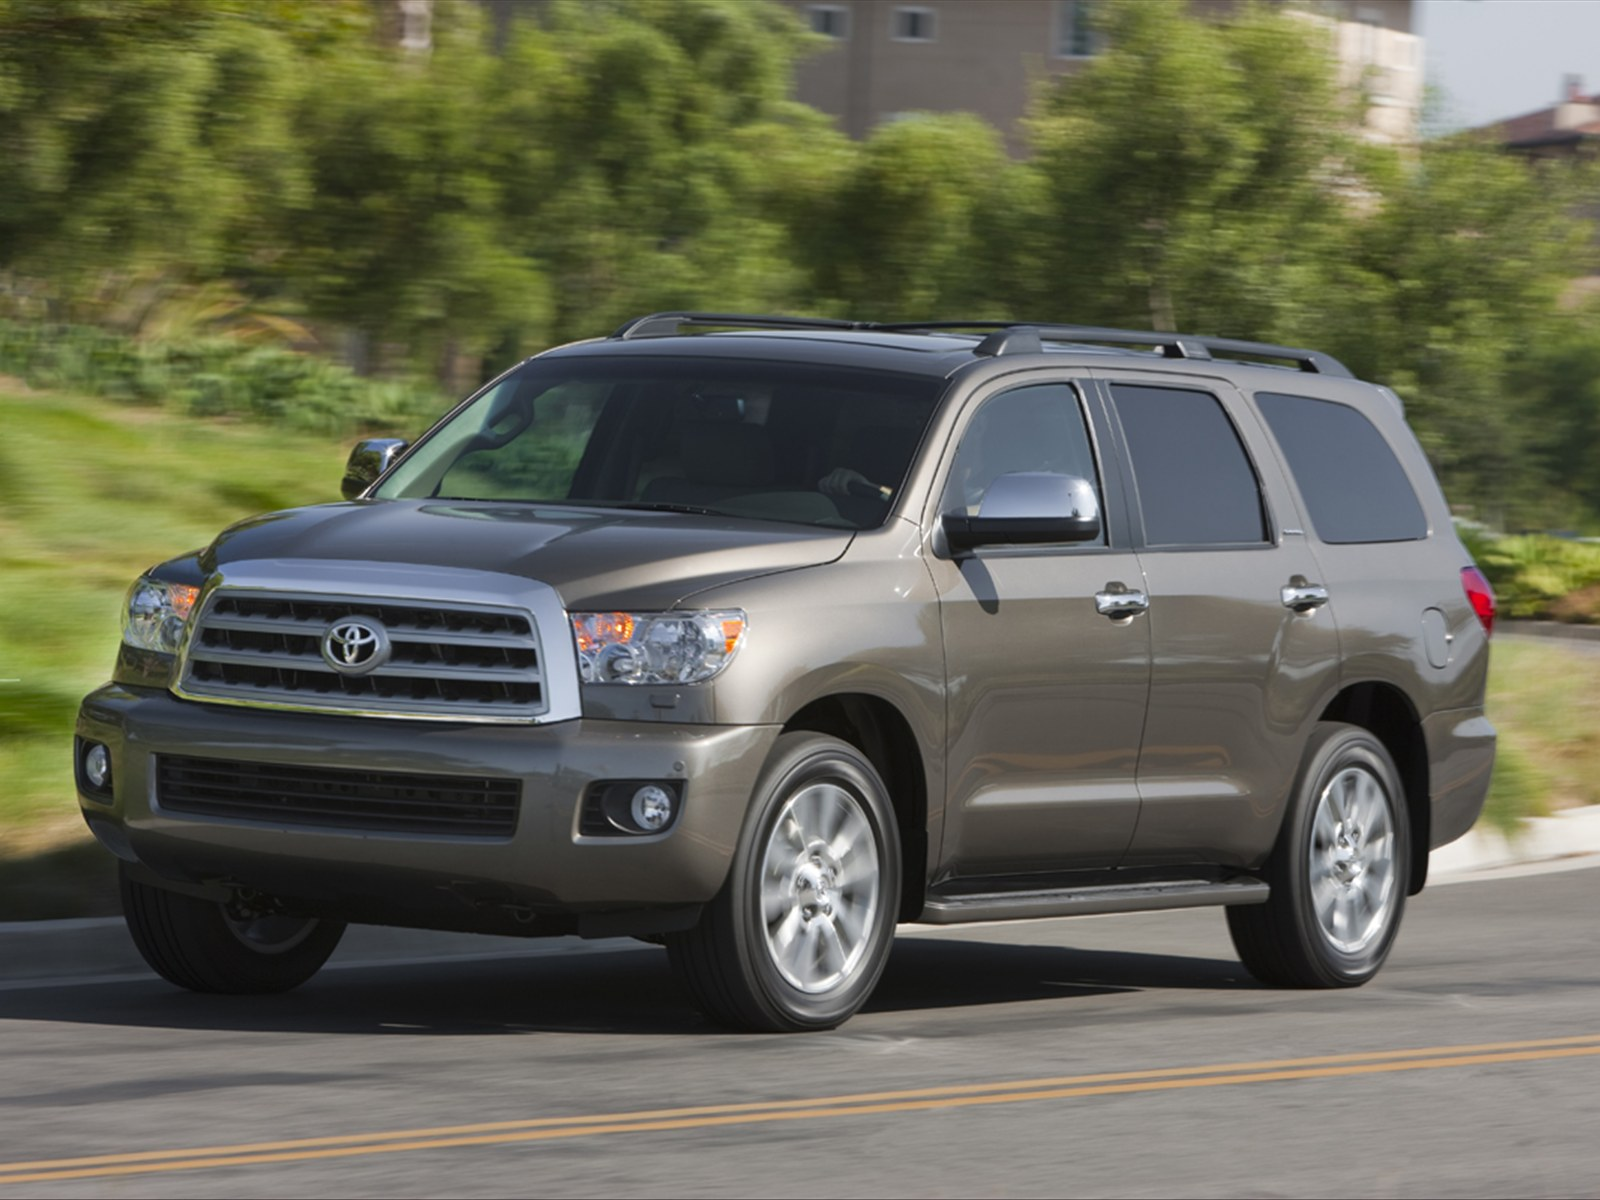 2011 Toyota Sequoia Official Photos 2011 Toyota Sequoia   photos, Price, Reviews, Specifications